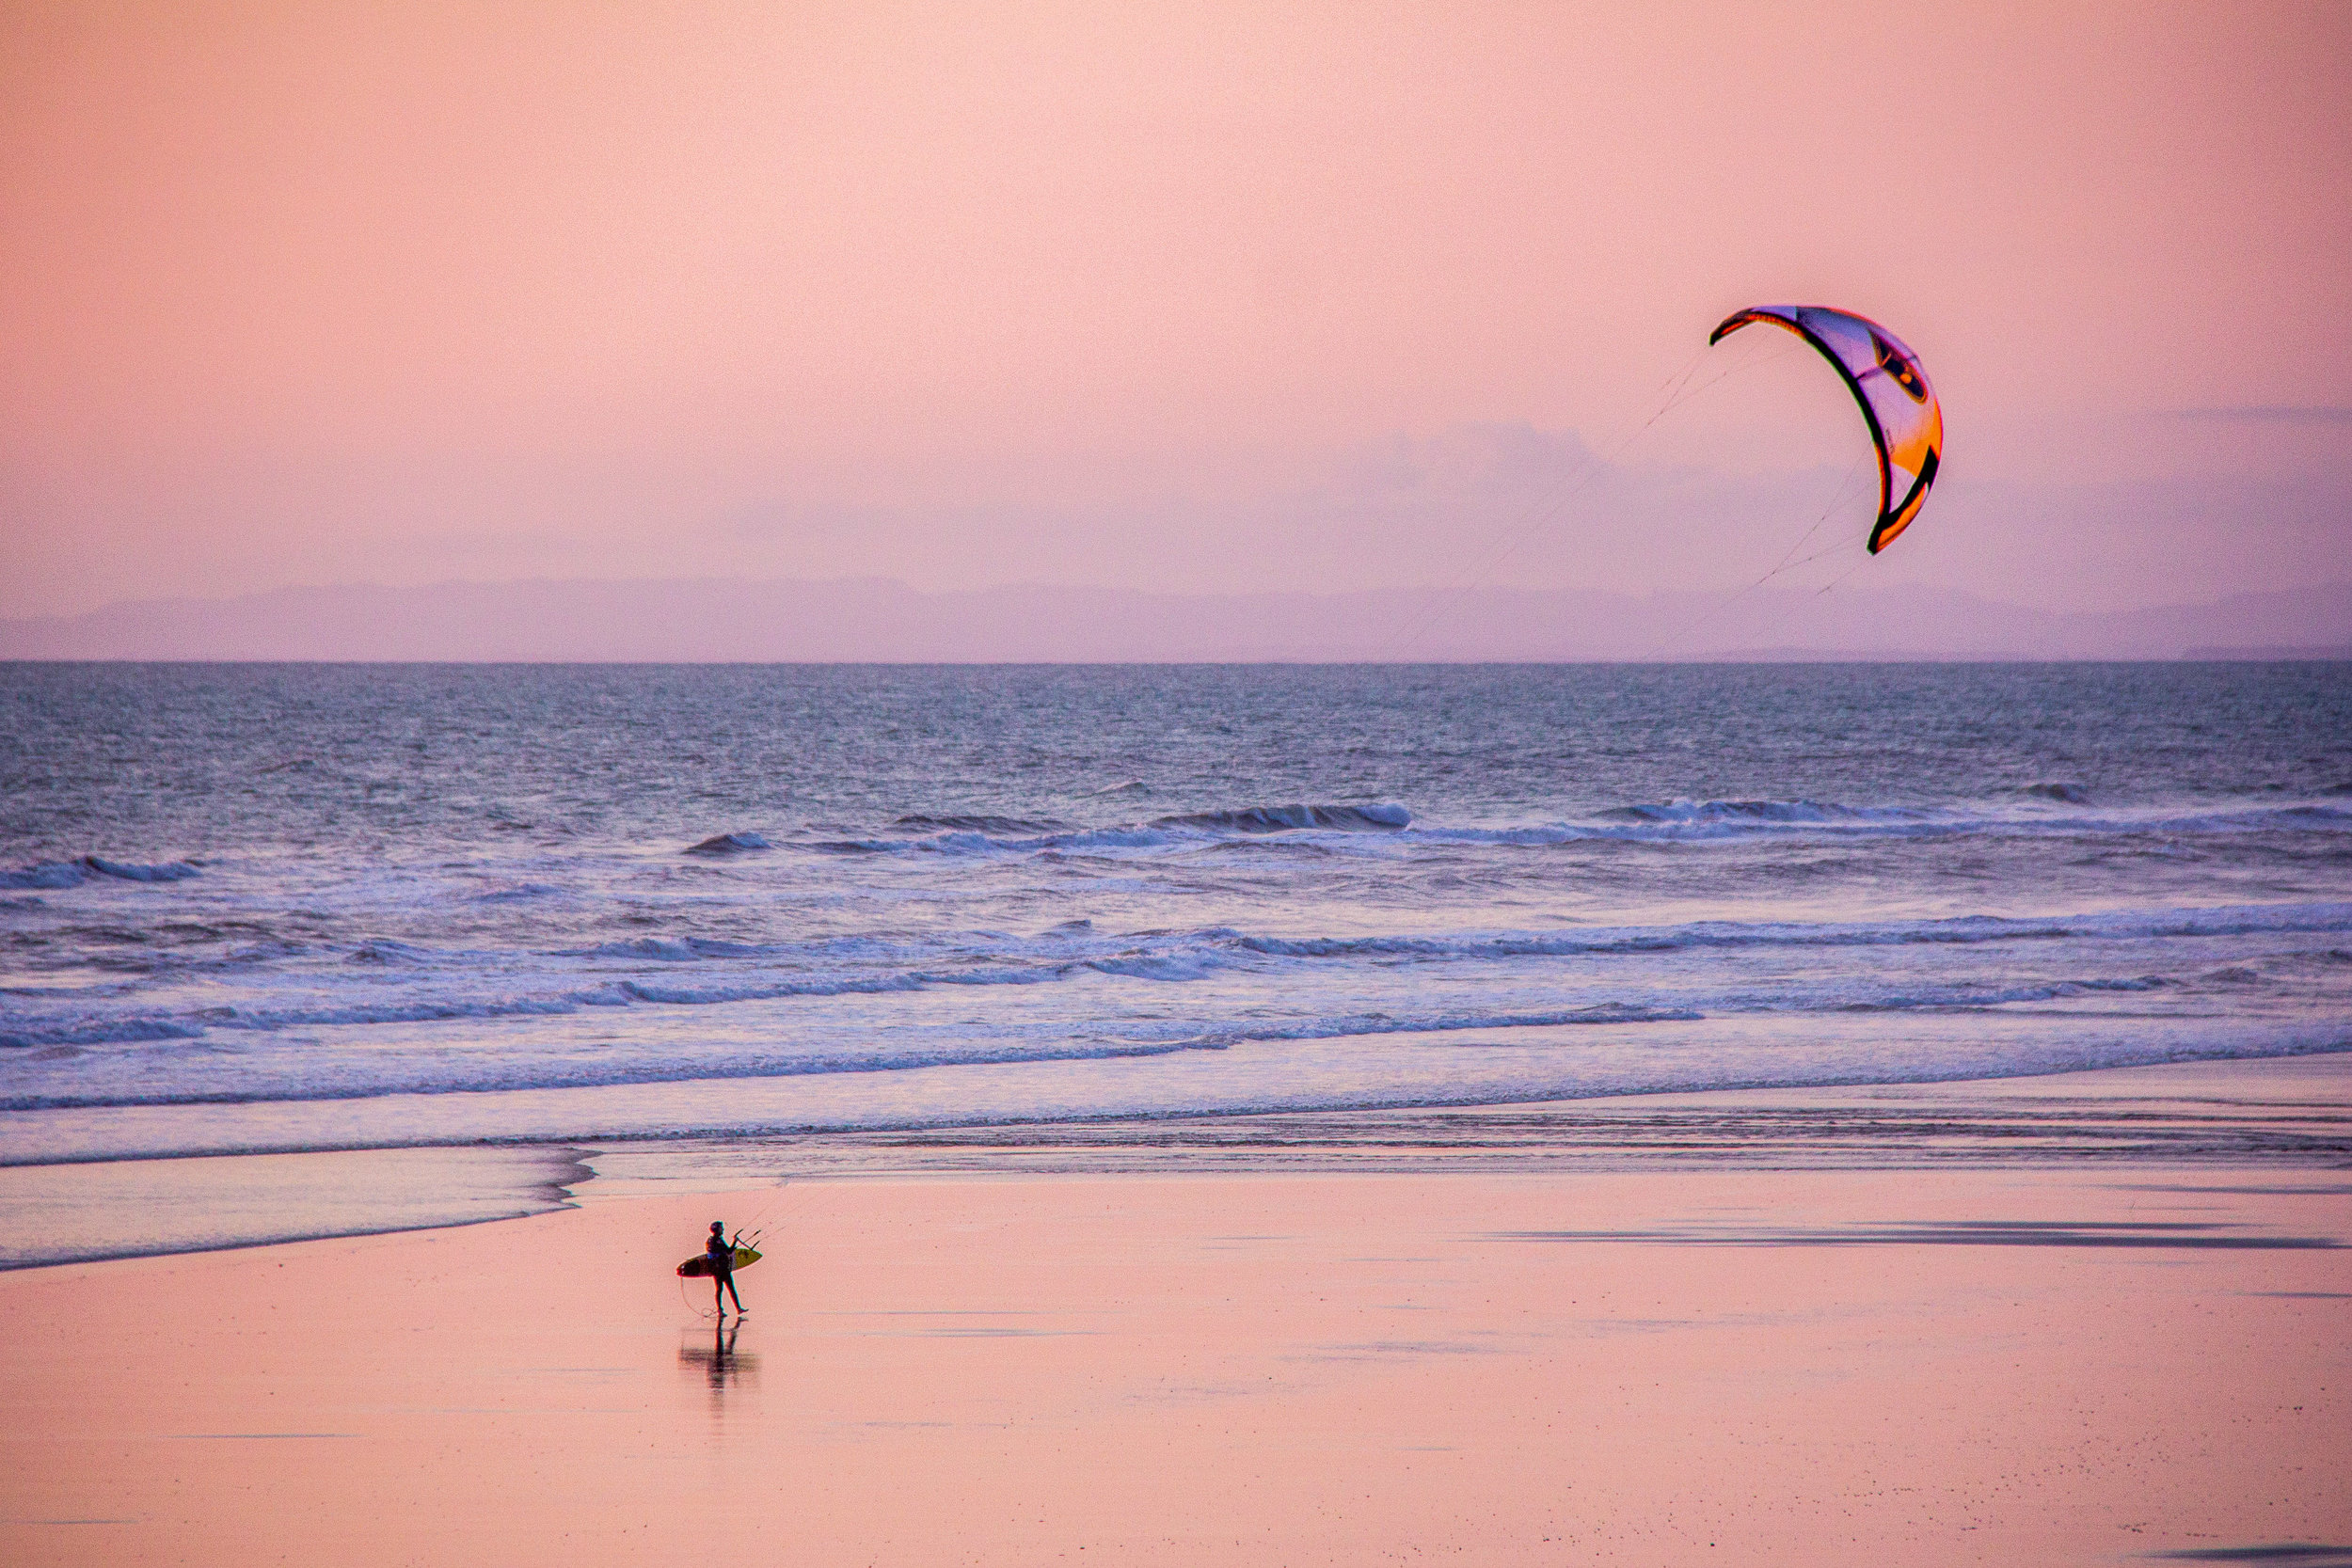 HImatangi-Kite-Surfer-credit-www.ManawatuNZ.co_.nz_.jpg